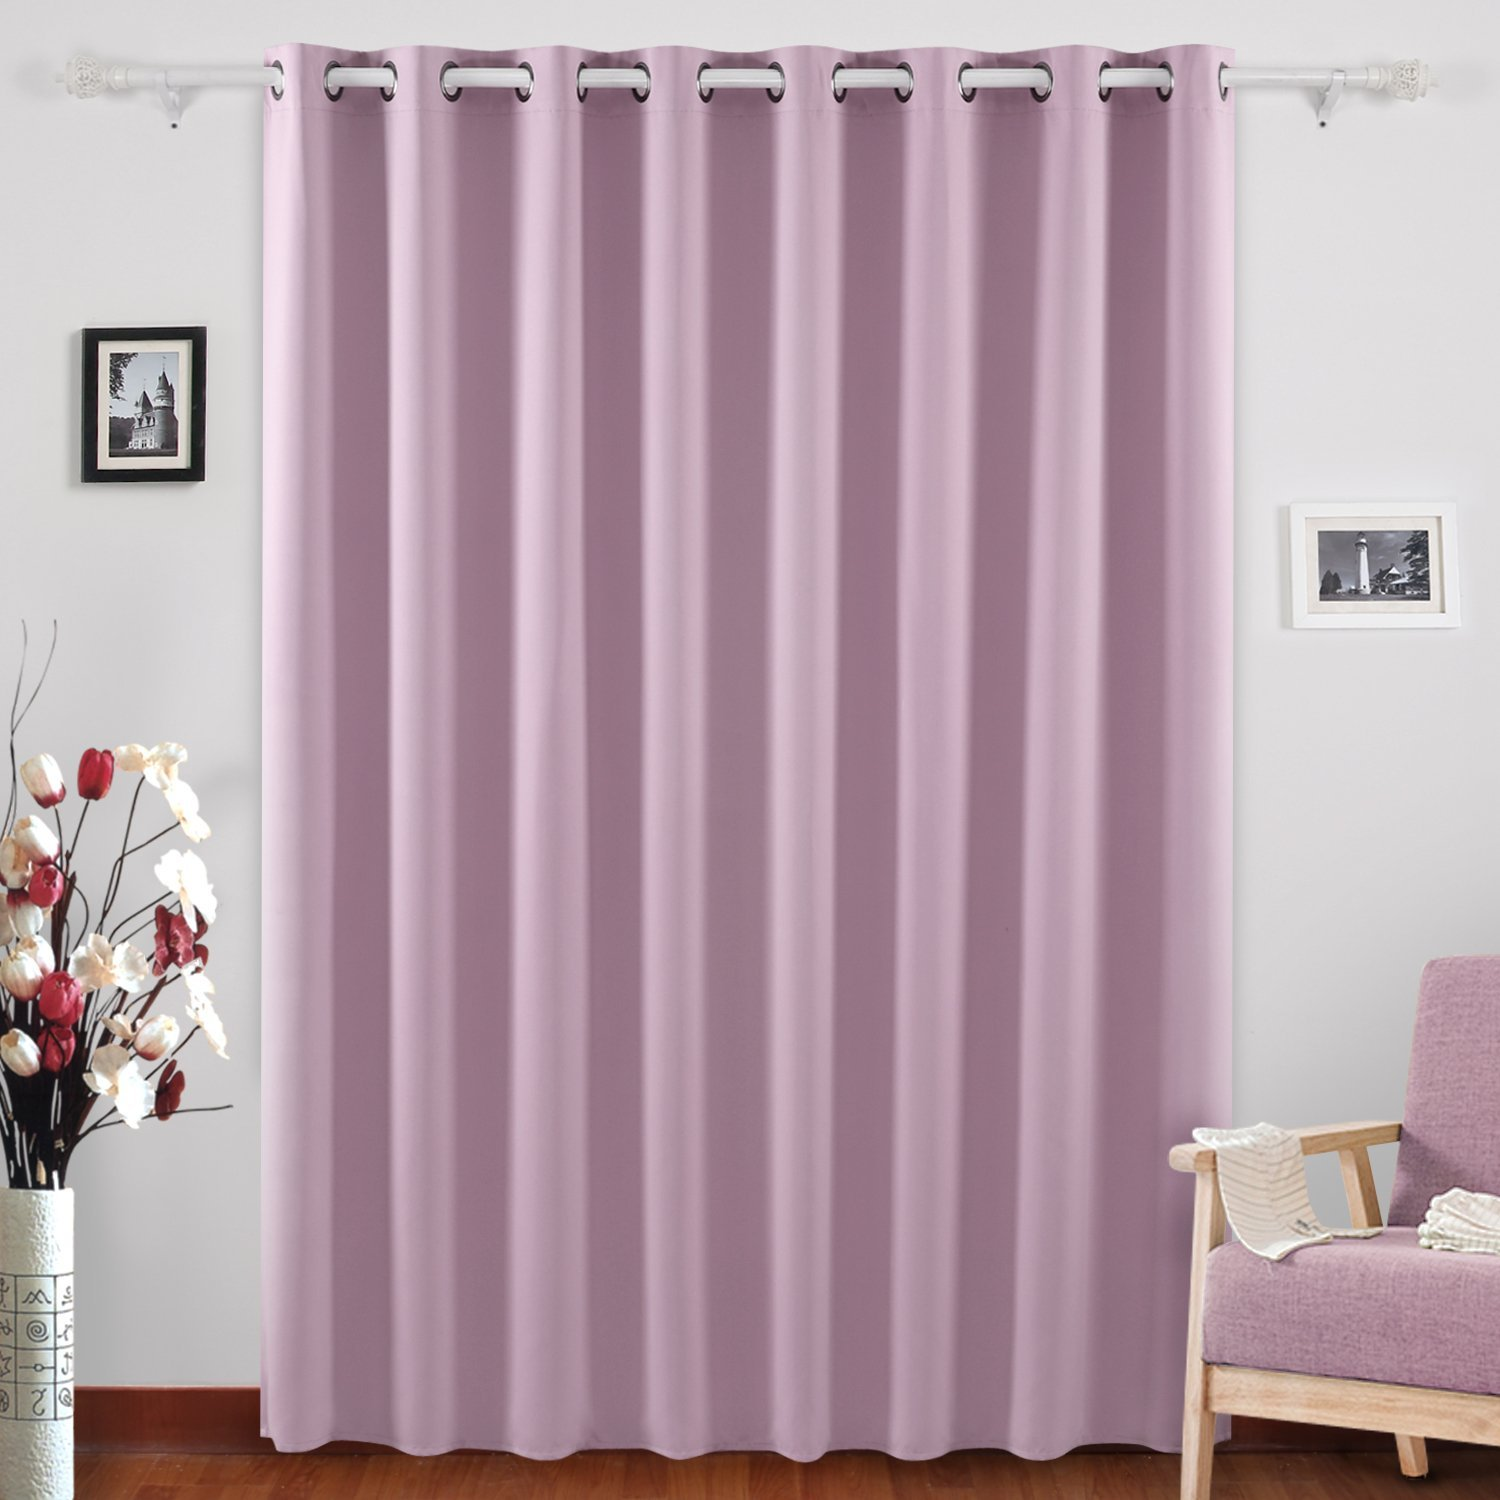 Get Quotations Deconovo Blackout Drapes Blind Curtain Thermal Insulated Wide Panel Curtains For Boys Room 100 X 95